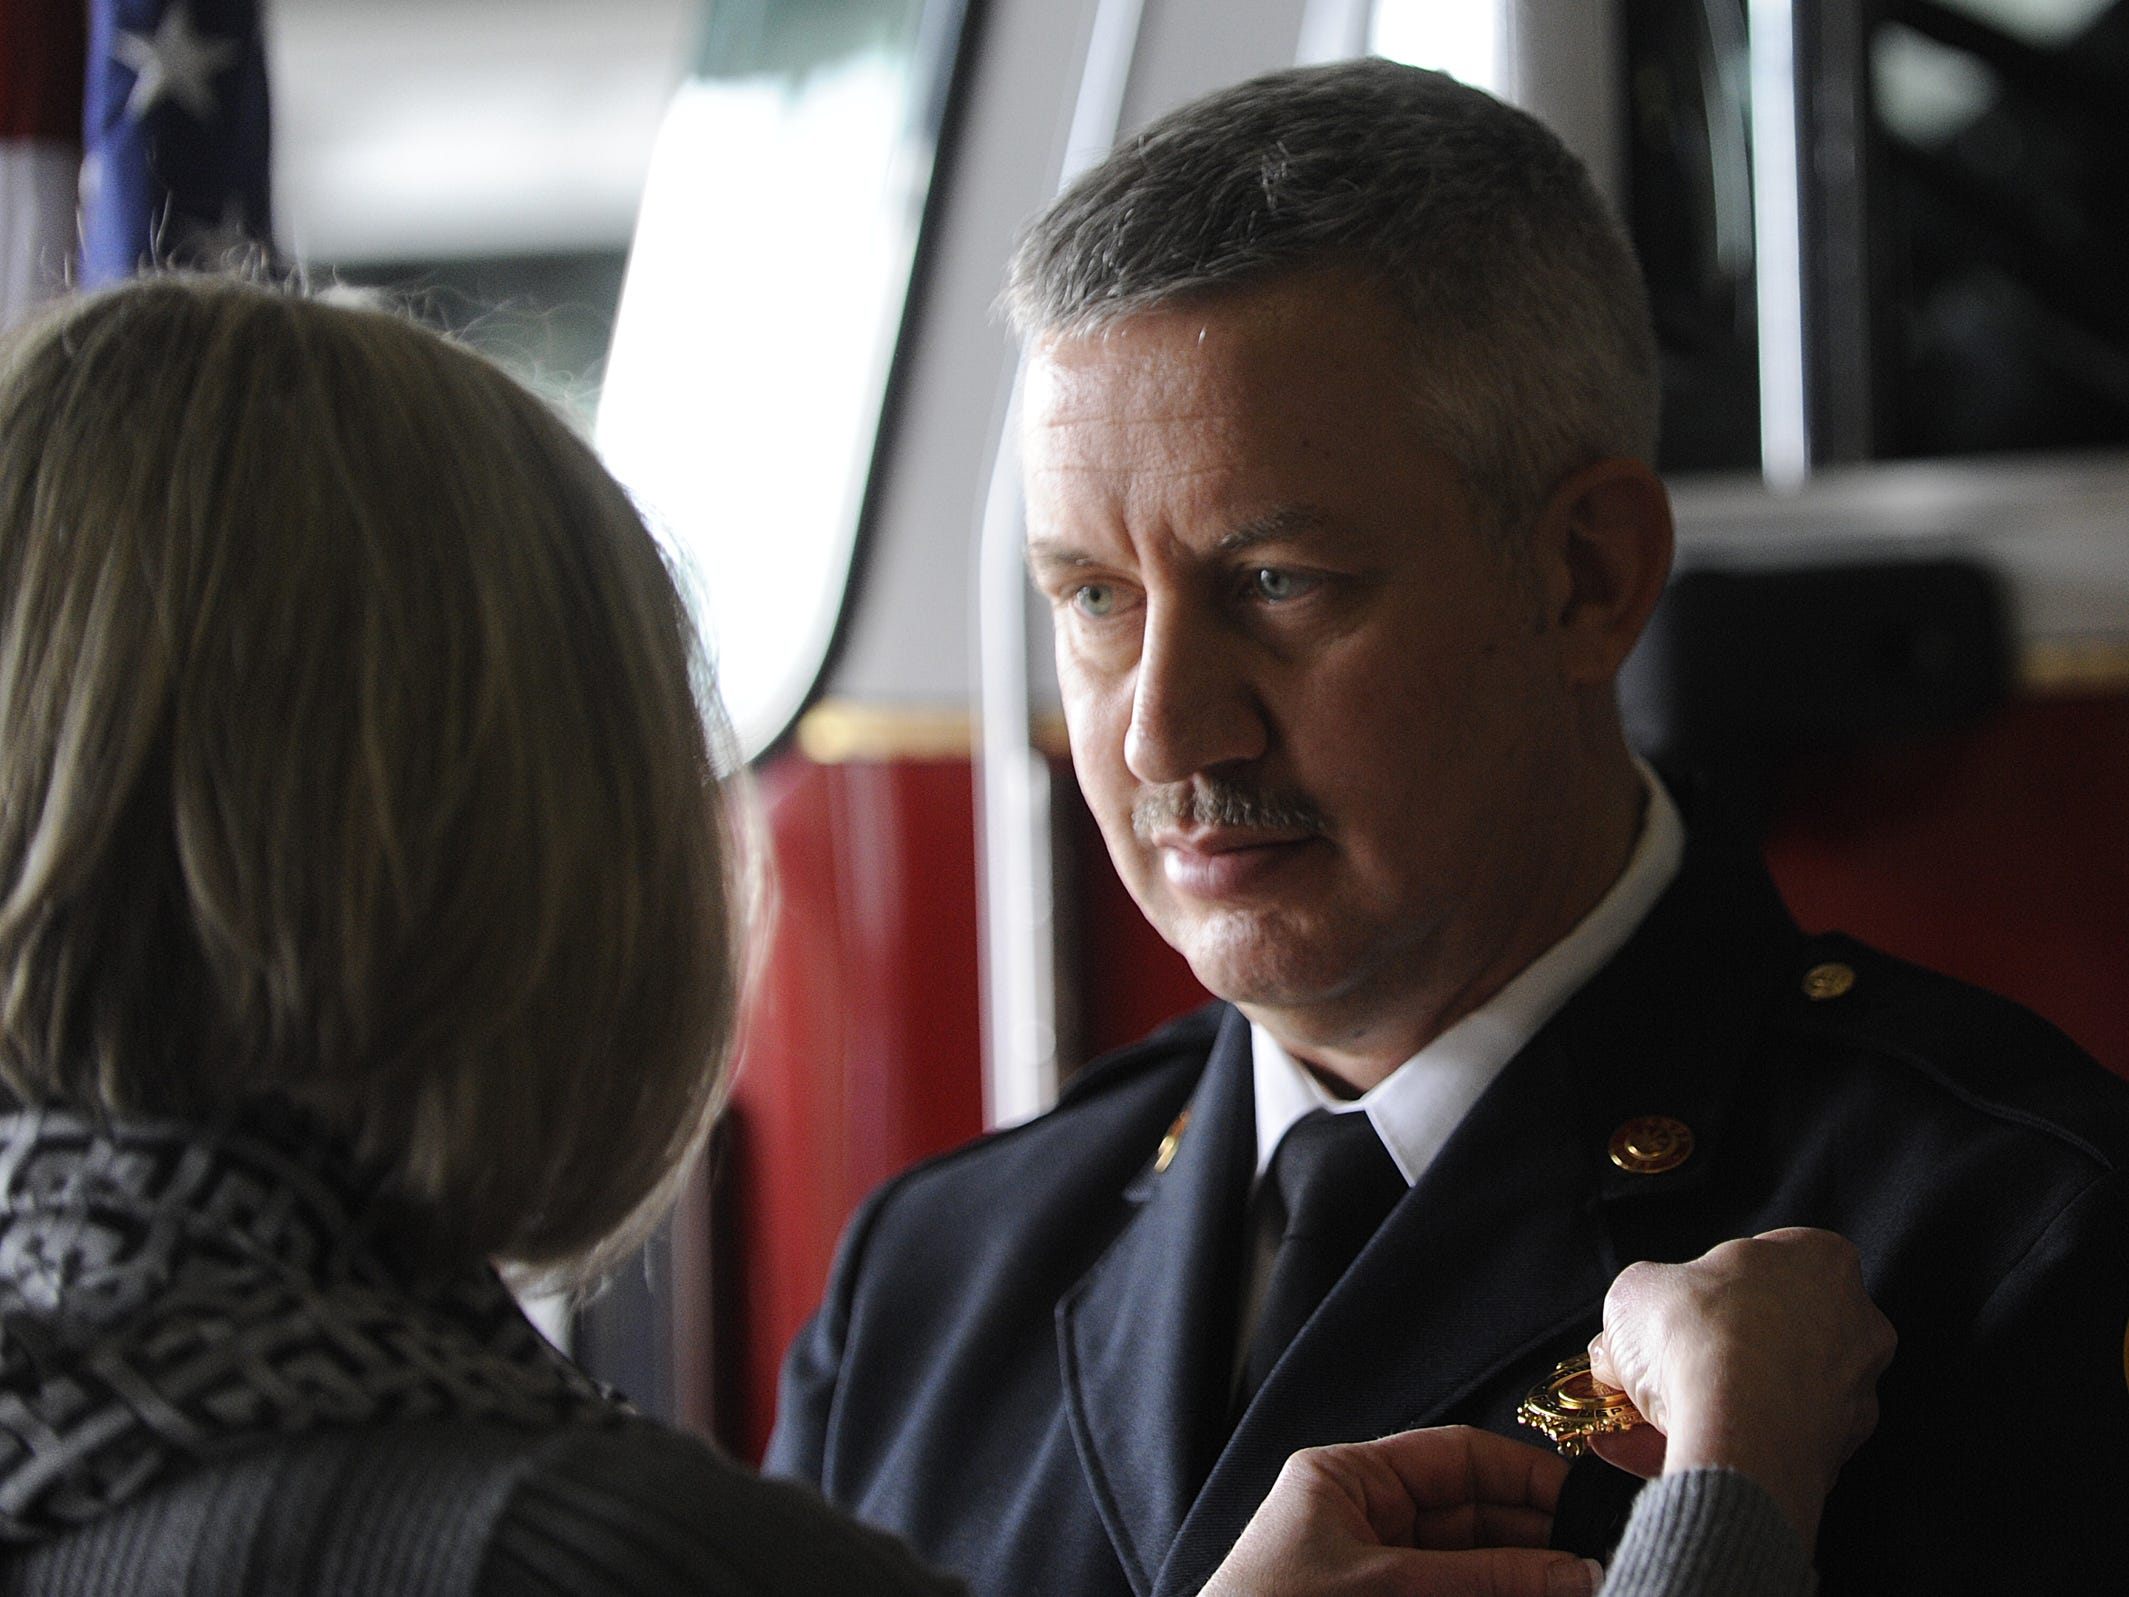 Newly named Chillicothe Fire Chief Jeff Creed waits as his wife, Chillicothe Fire Lt. Tracey Creed, pins the chief's badge on him after his swearing-in ceremony  on Jan. 25, 2013 at the Chillicothe Fire Department's Station 1.